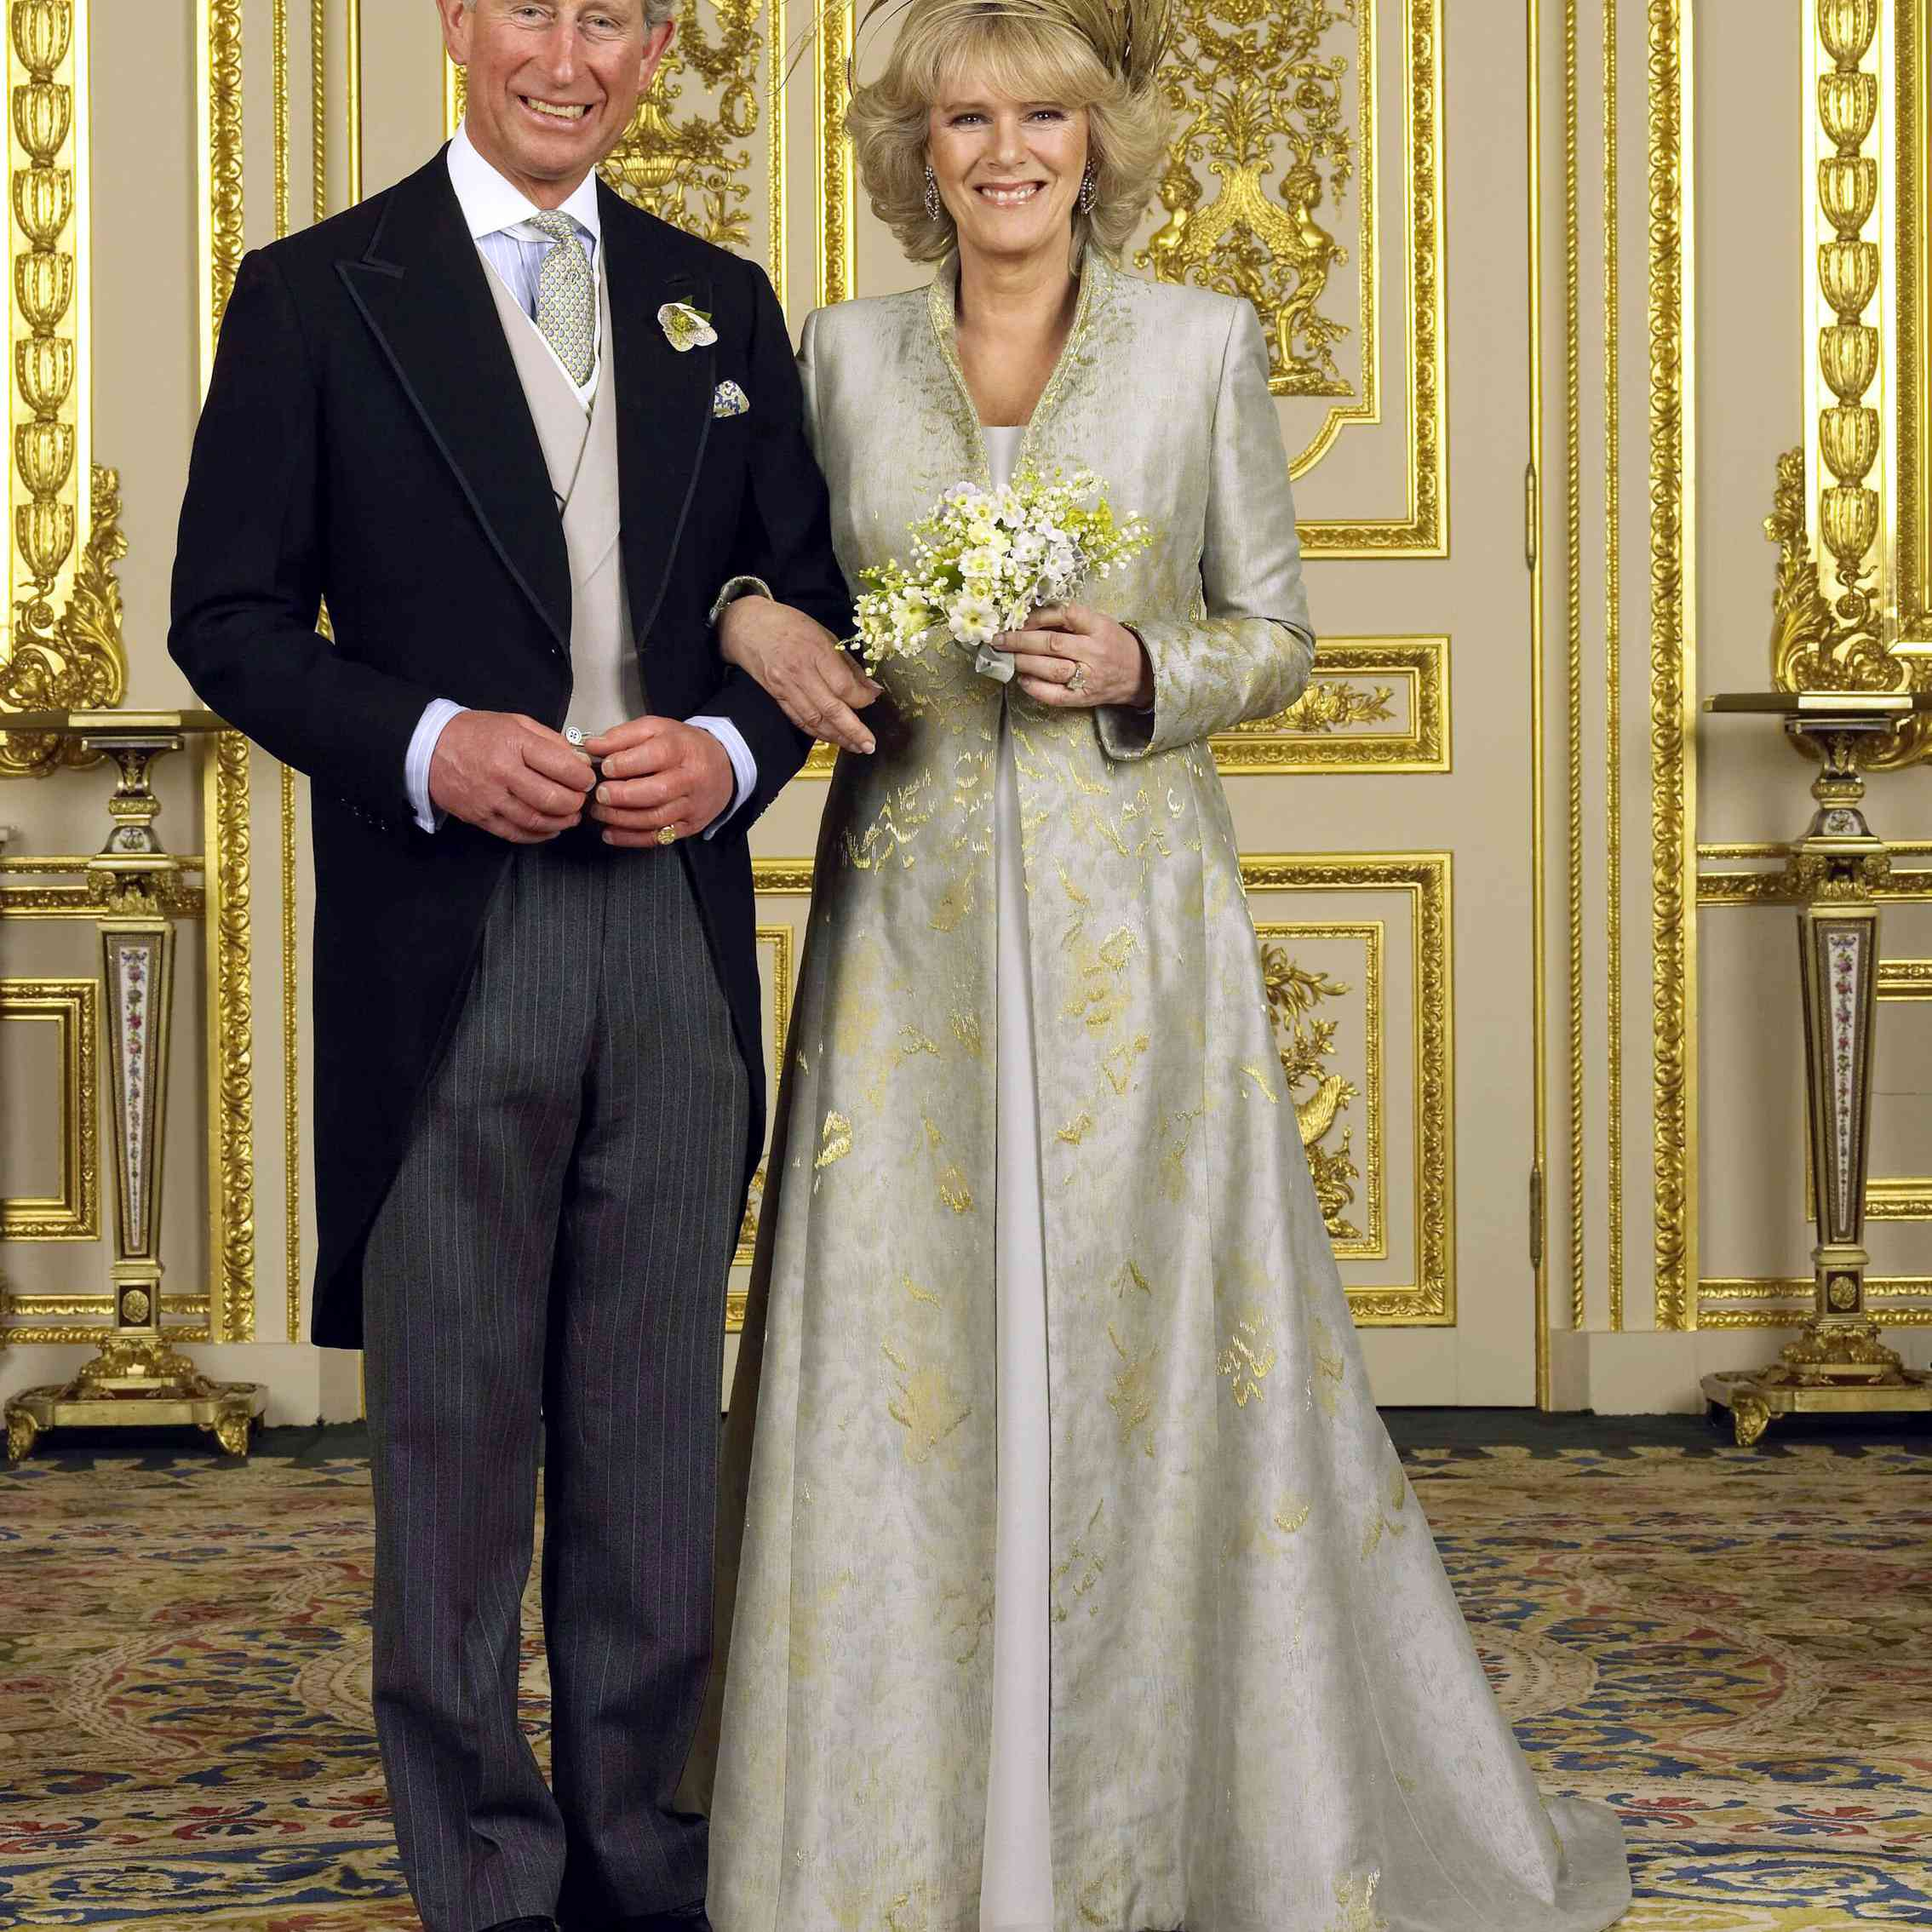 The Prince of Wales and Camilla, Duchess of Cornwall on their wedding day